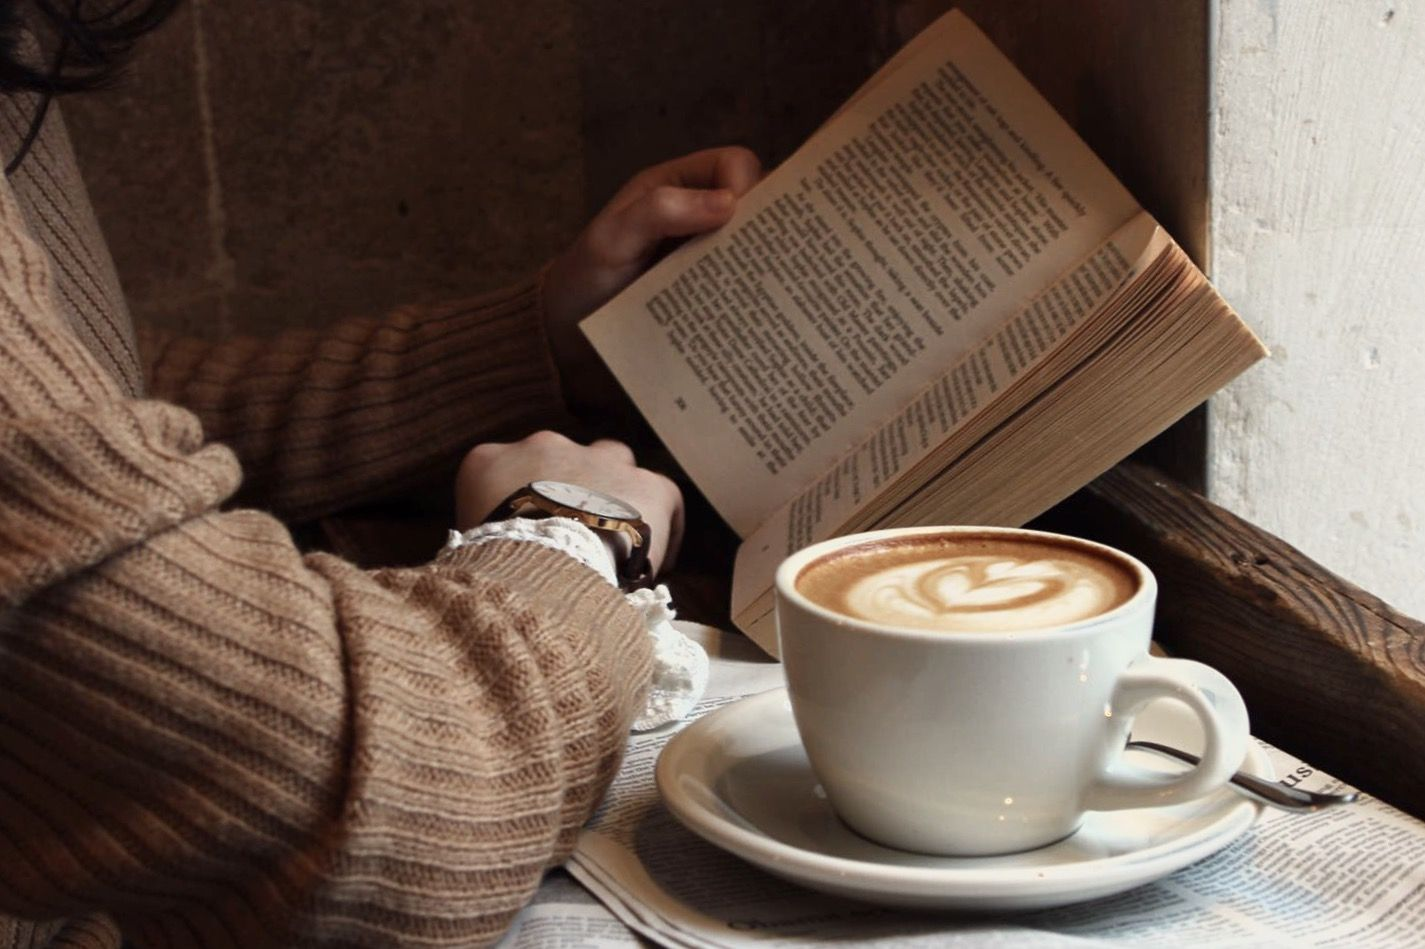 Pin By Kasey On Oc Quincy Belmont Coffee And Books Brown Aesthetic Remus